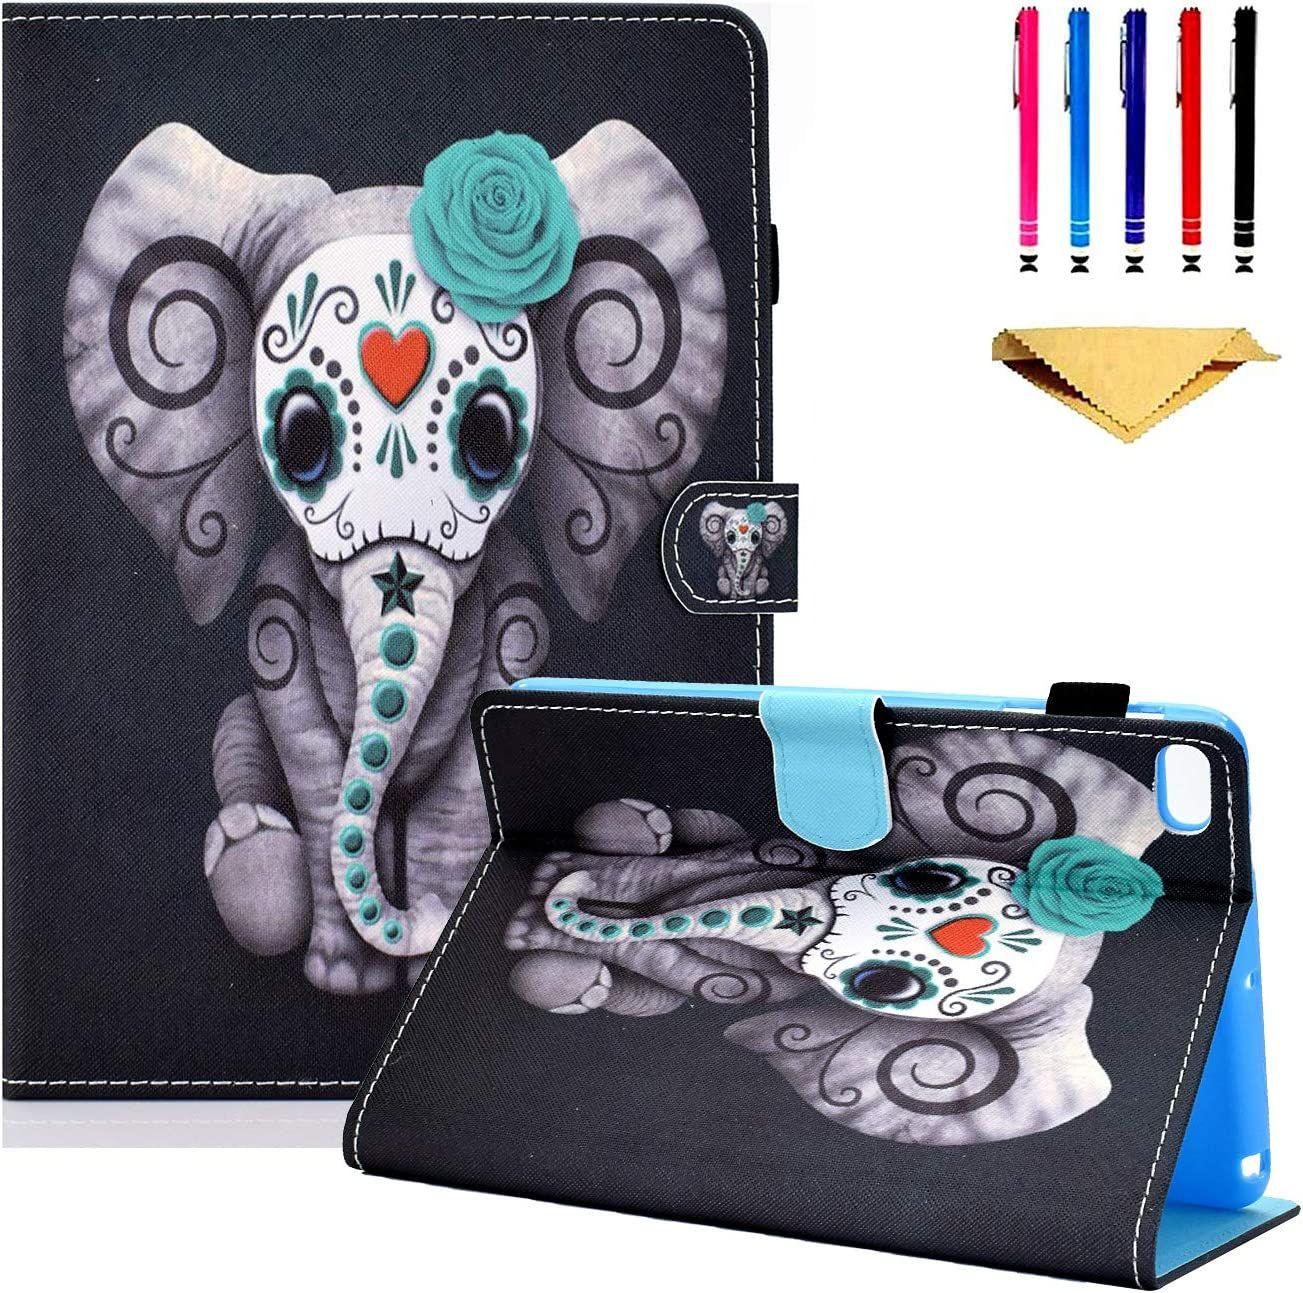 iPad 9.7 inch 2018 2017 Case, iPad Air Case, iPad Air 2 Case, Funut Leather Folio Smart Cover with Auto Wake/Sleep Stand Wallet Case with Kickstand for Apple Ipad 6th/5th Generation Cases,Elephant